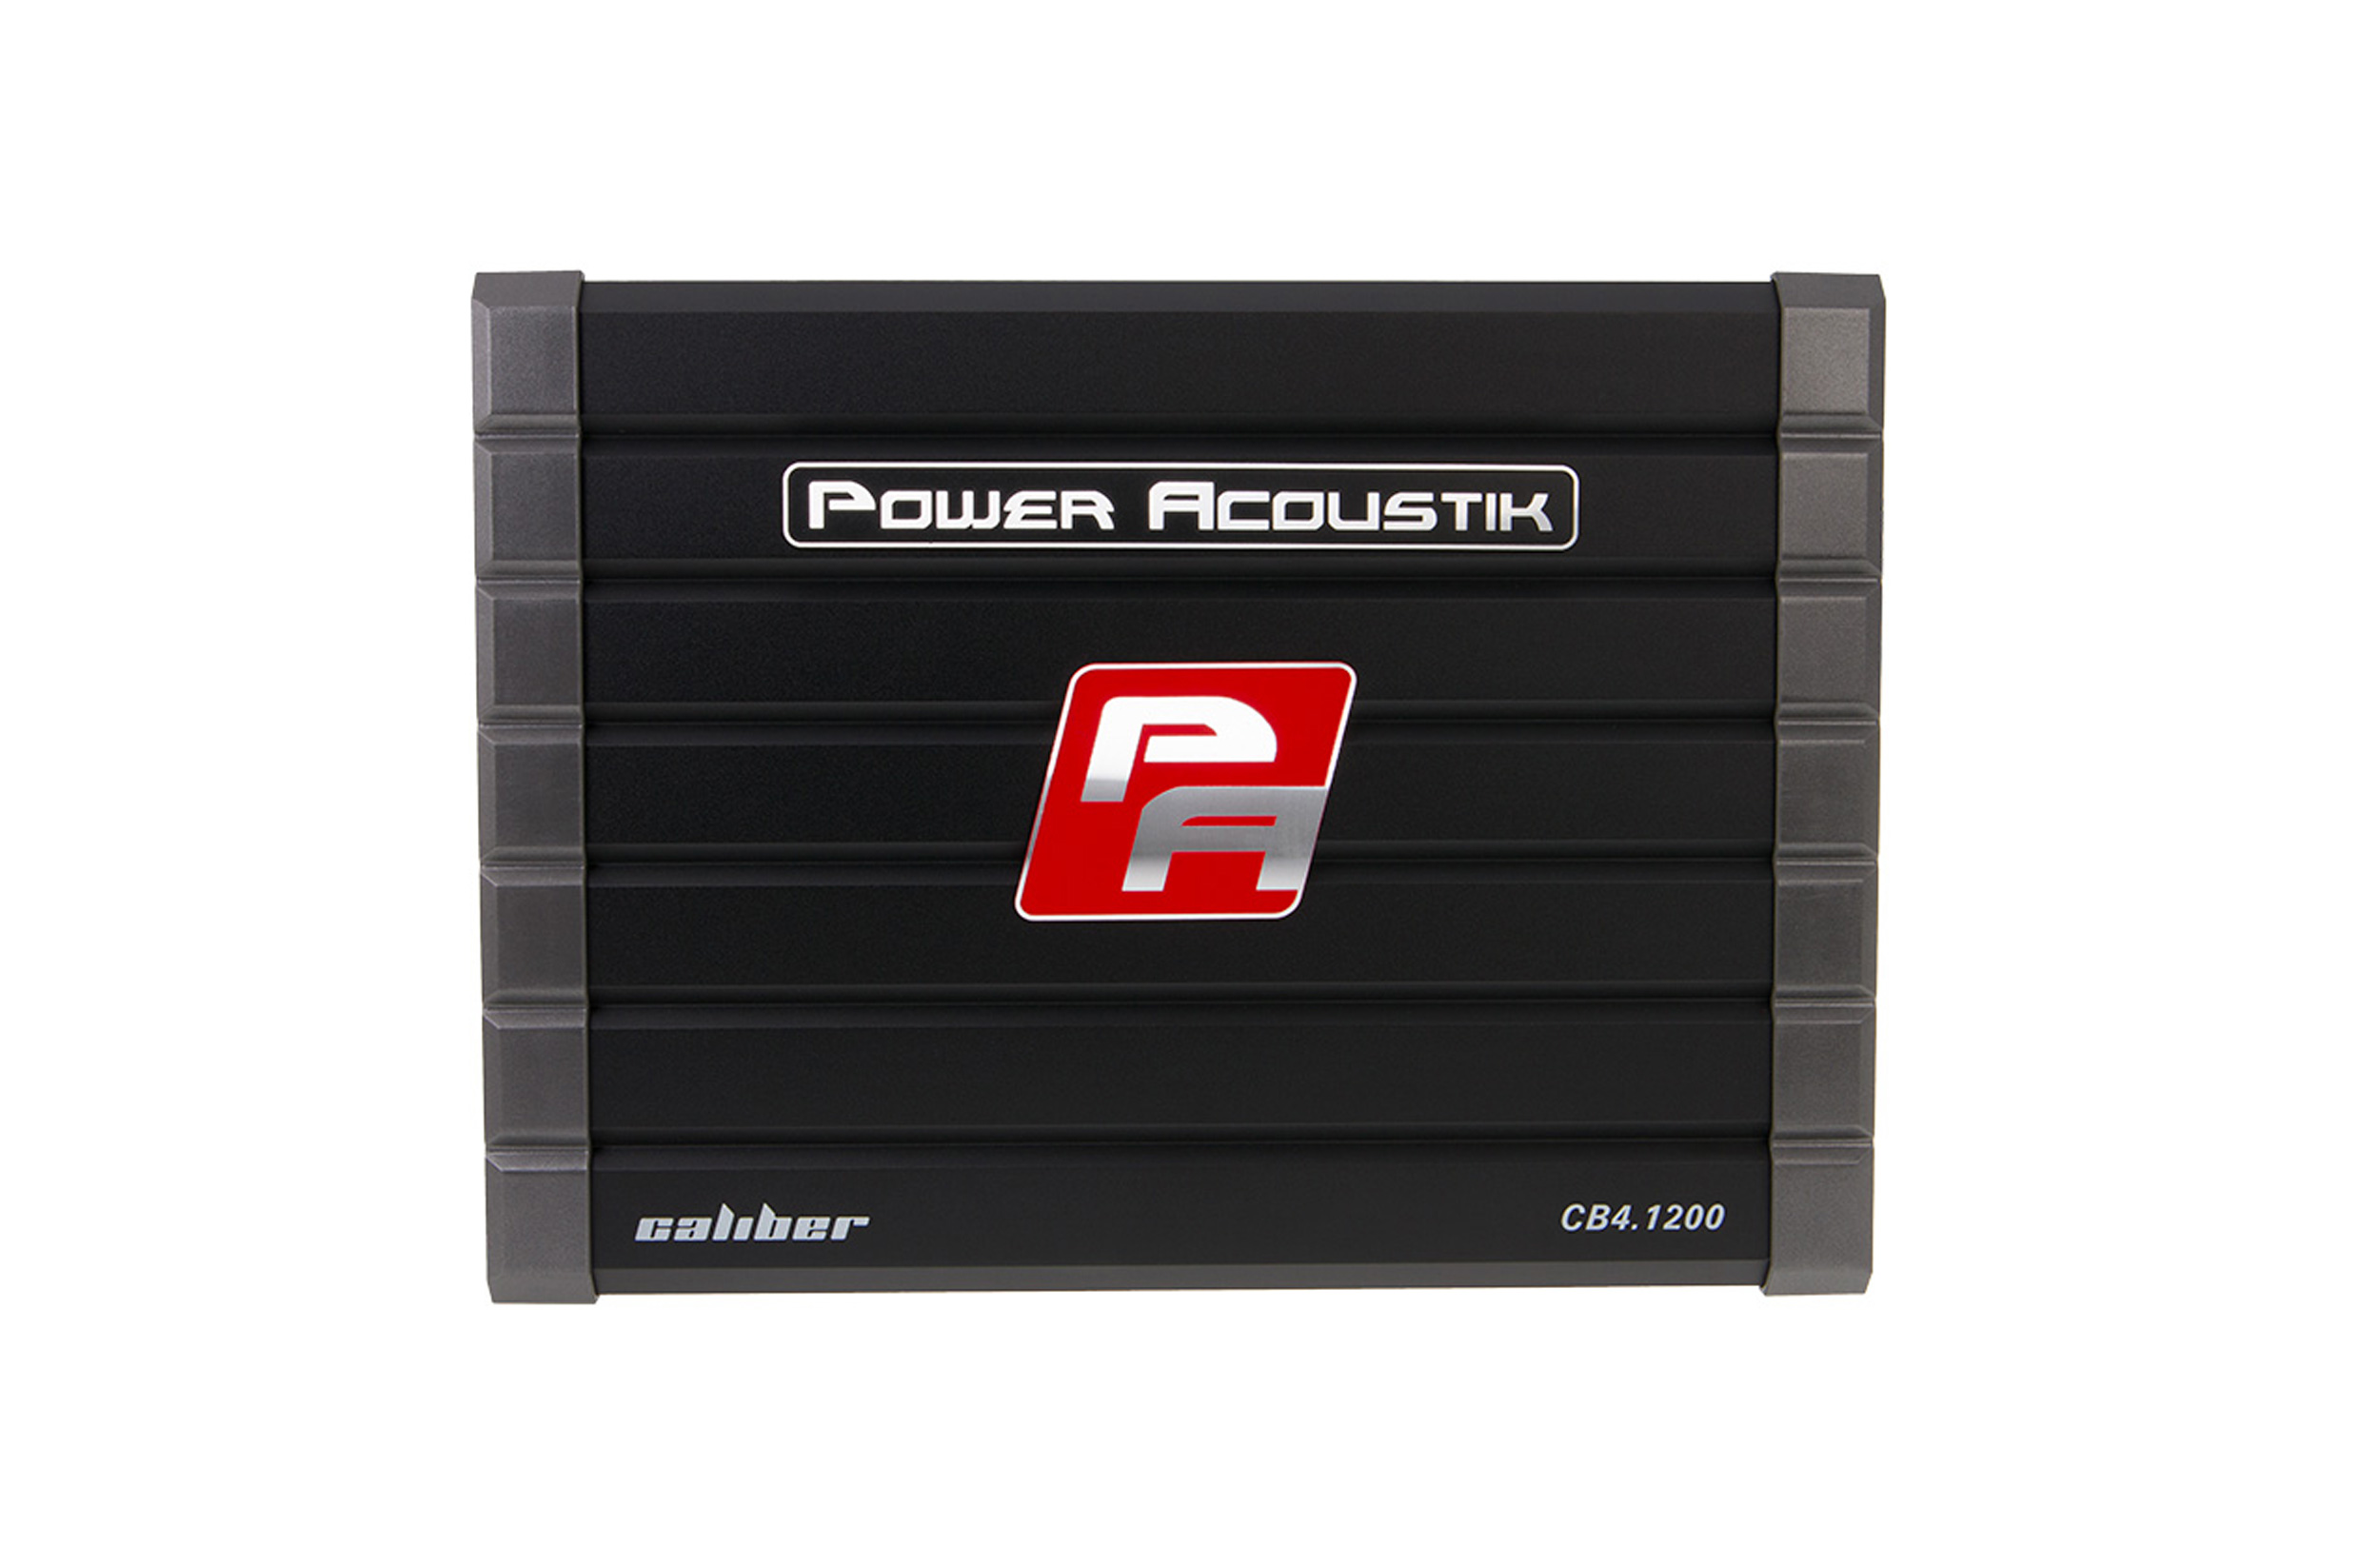 Power Acoustik CB4-1200 Caliber Series 1,200w Class A/B Full Range Amplifier